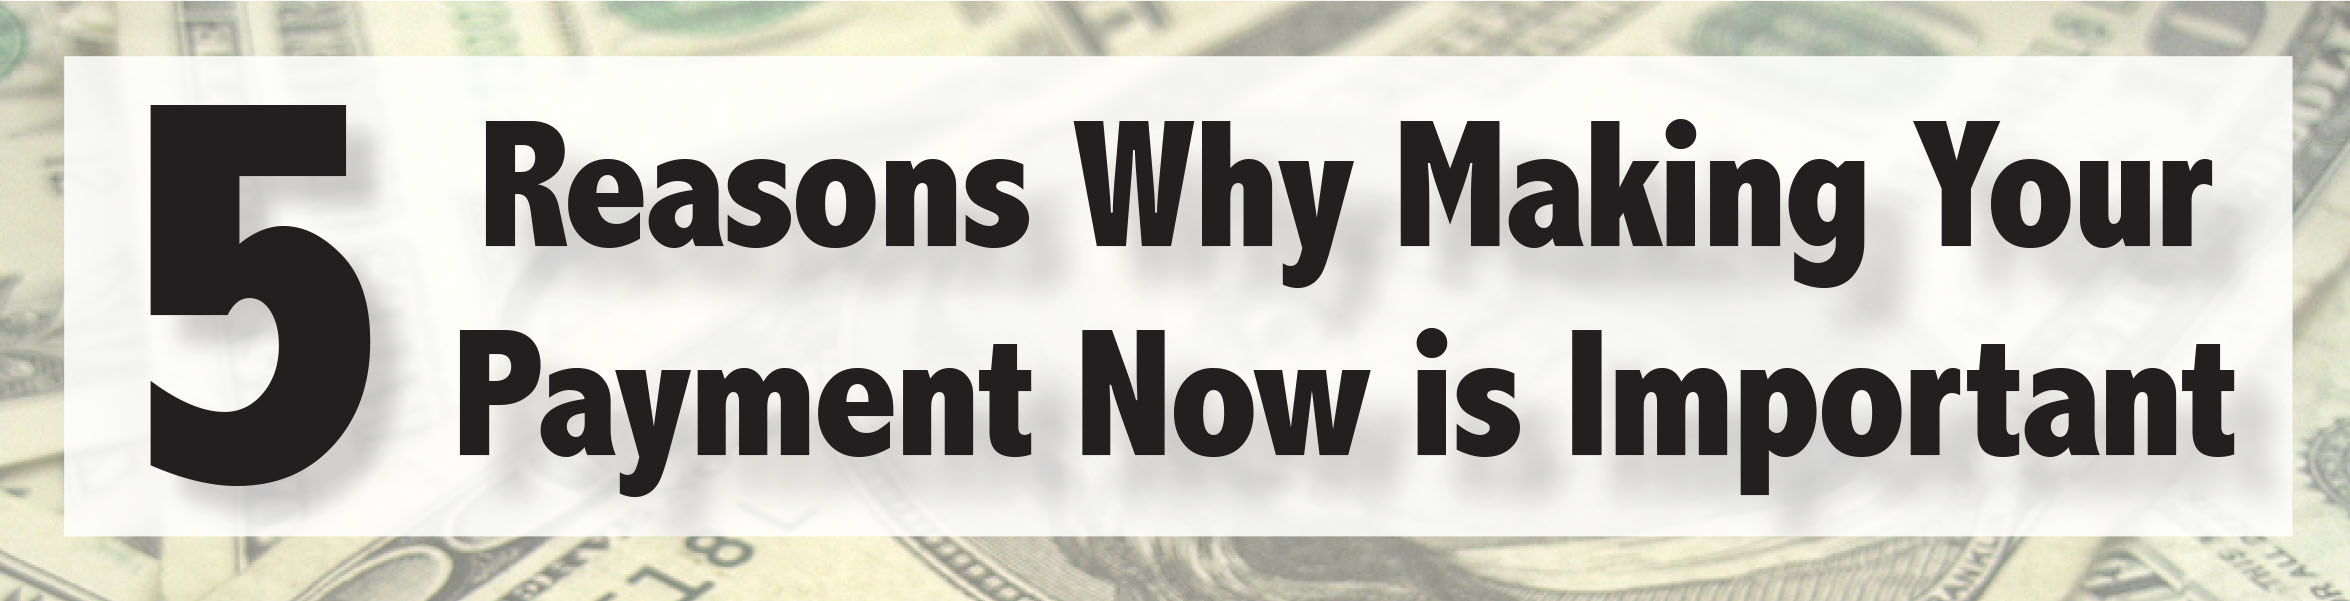 5 reasons why making your payment now is important joliet junior college jjc